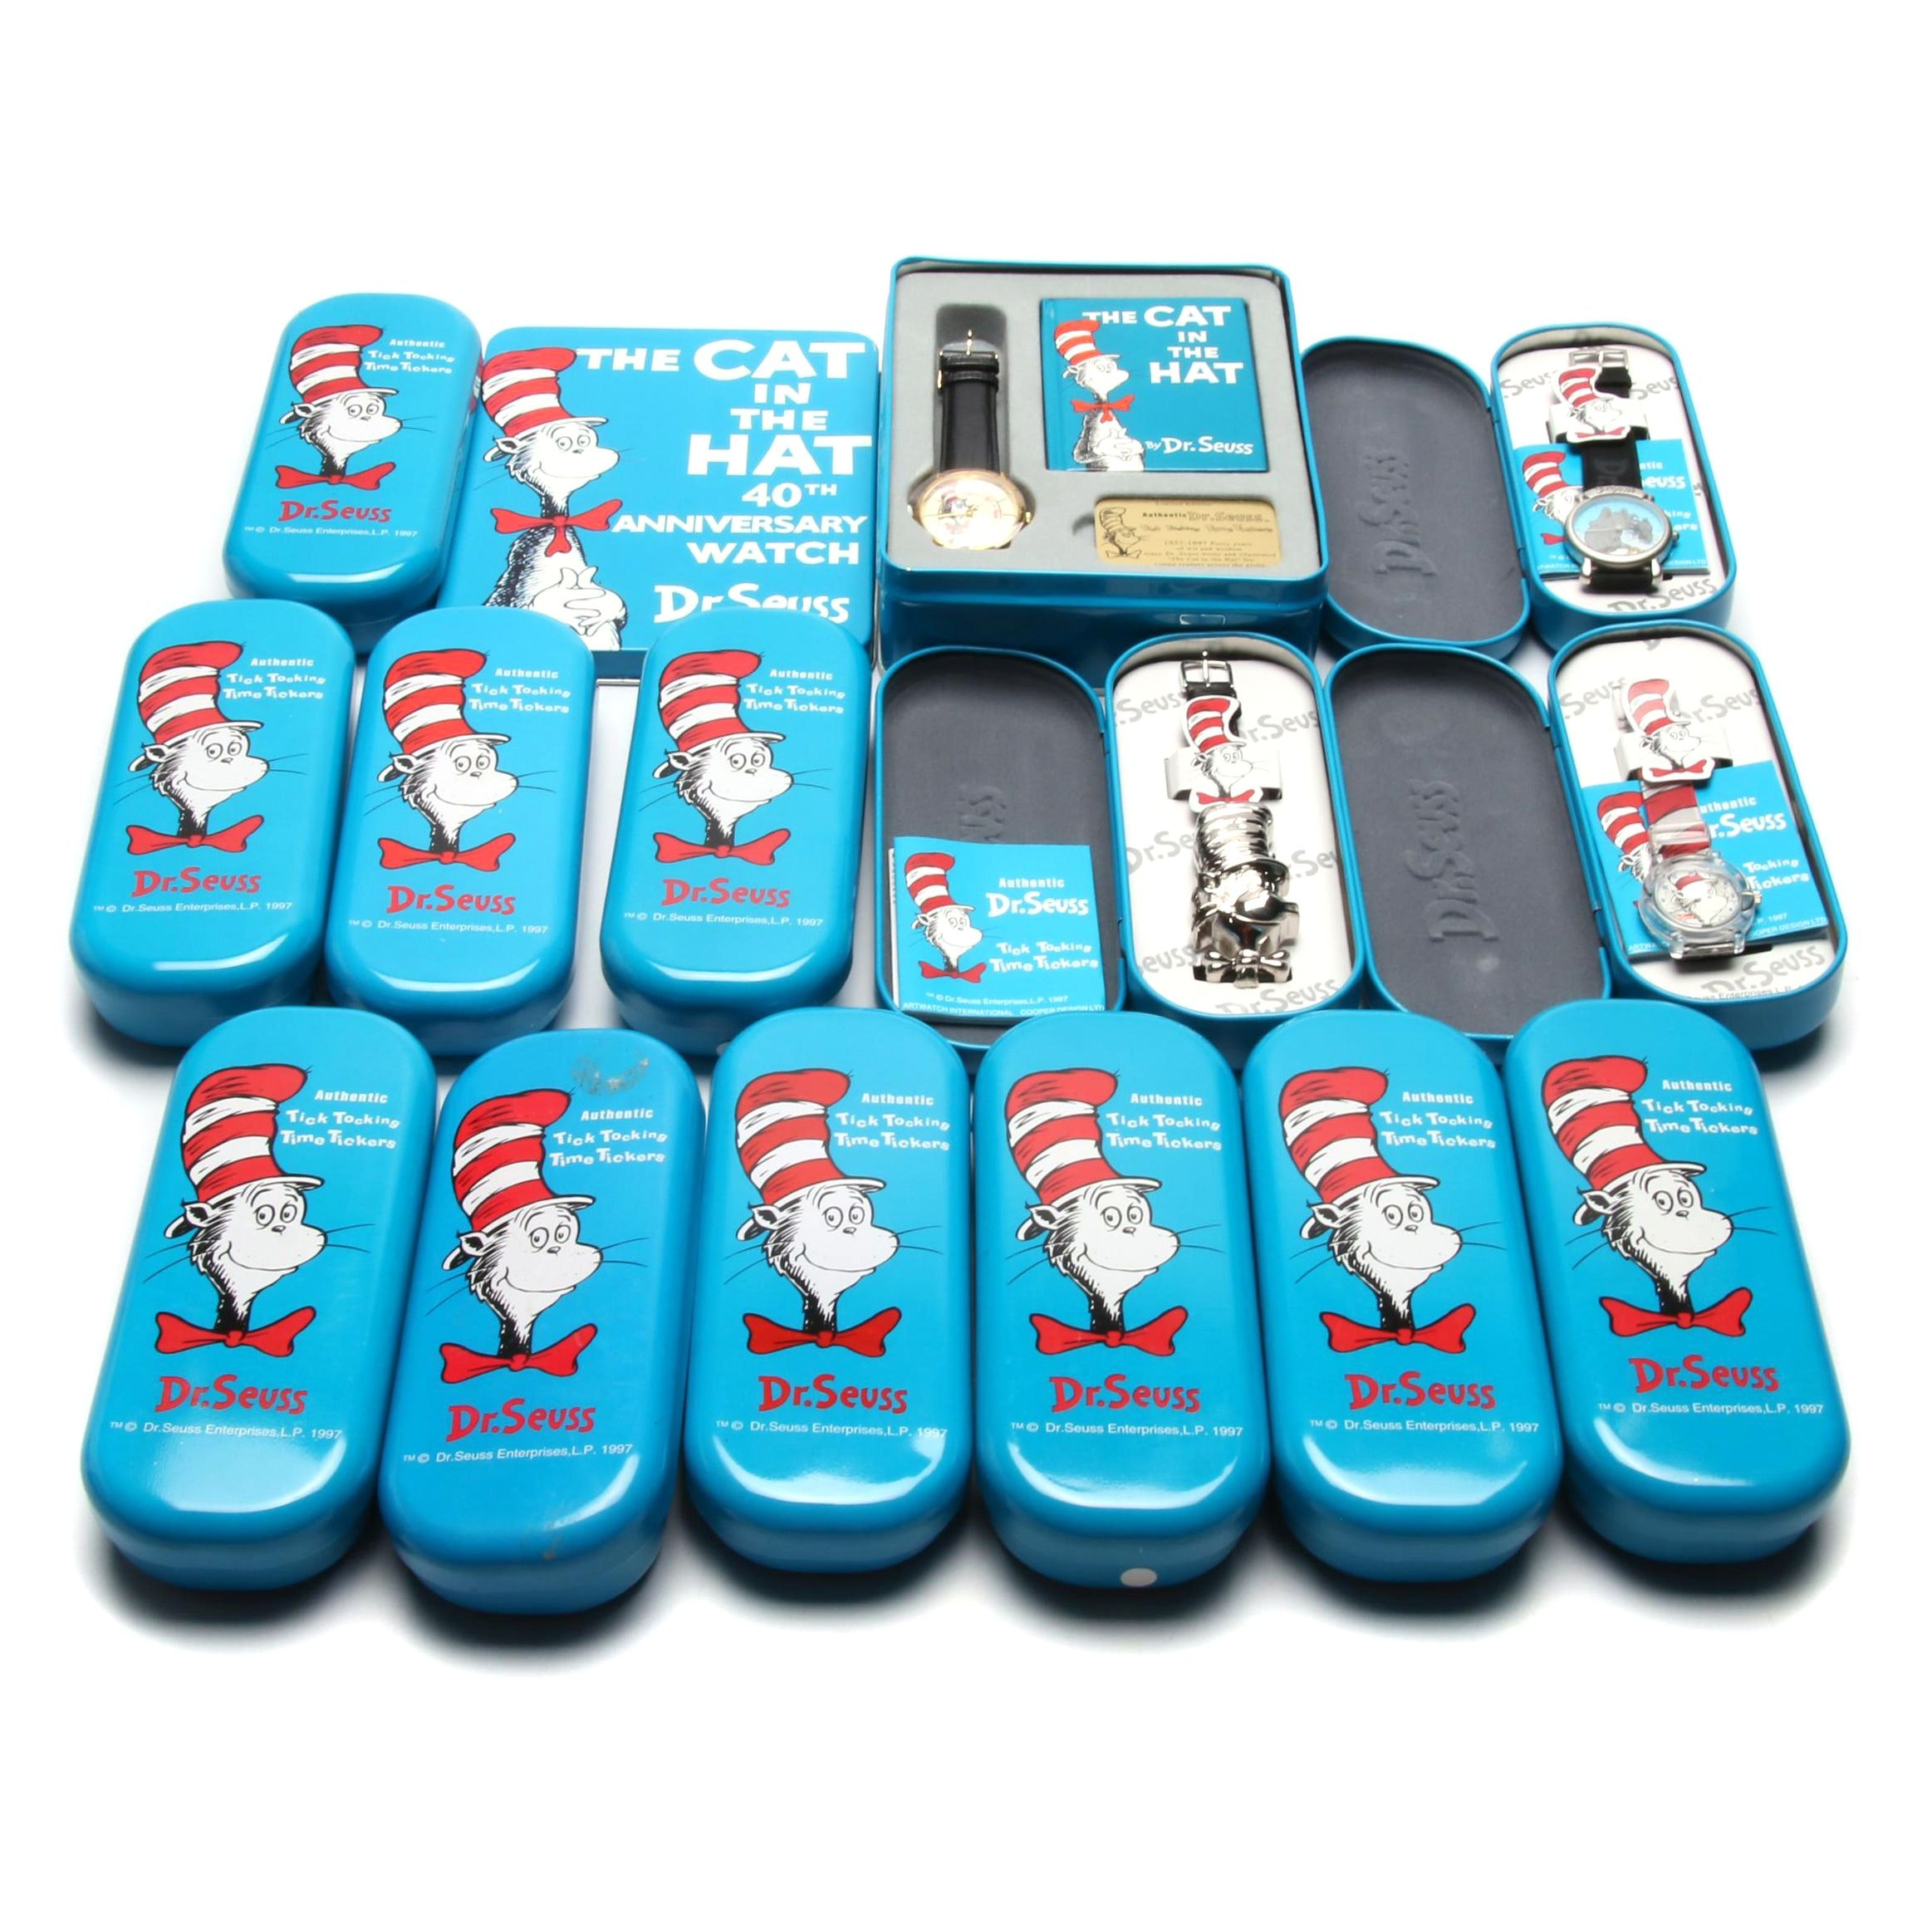 Dr. Seuss Collectible Wristwatches